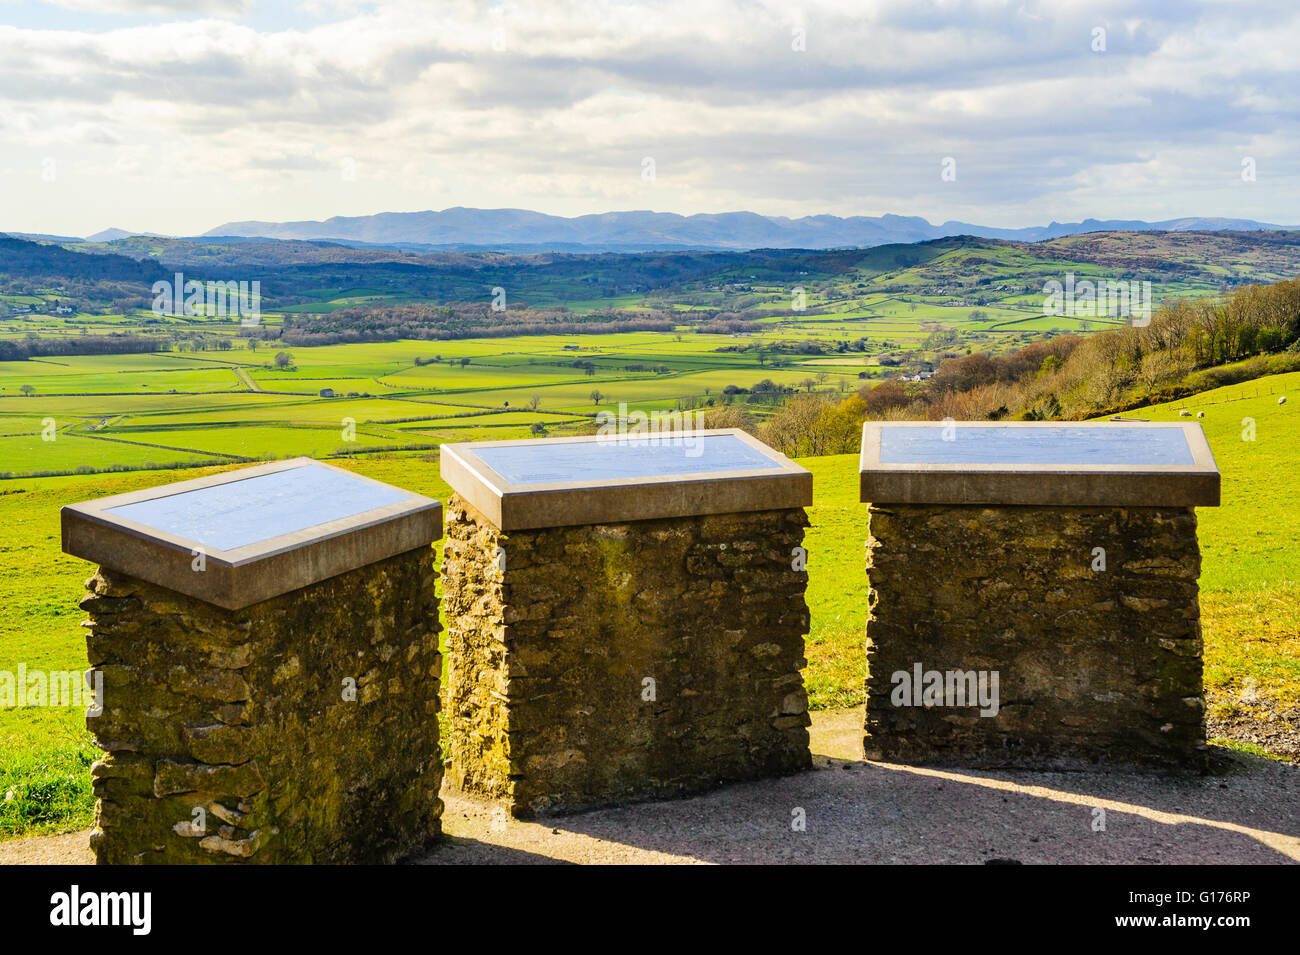 View indicator at Helsington church looking over the Lyth Valley to the high fells in the Lake District National - Stock Image